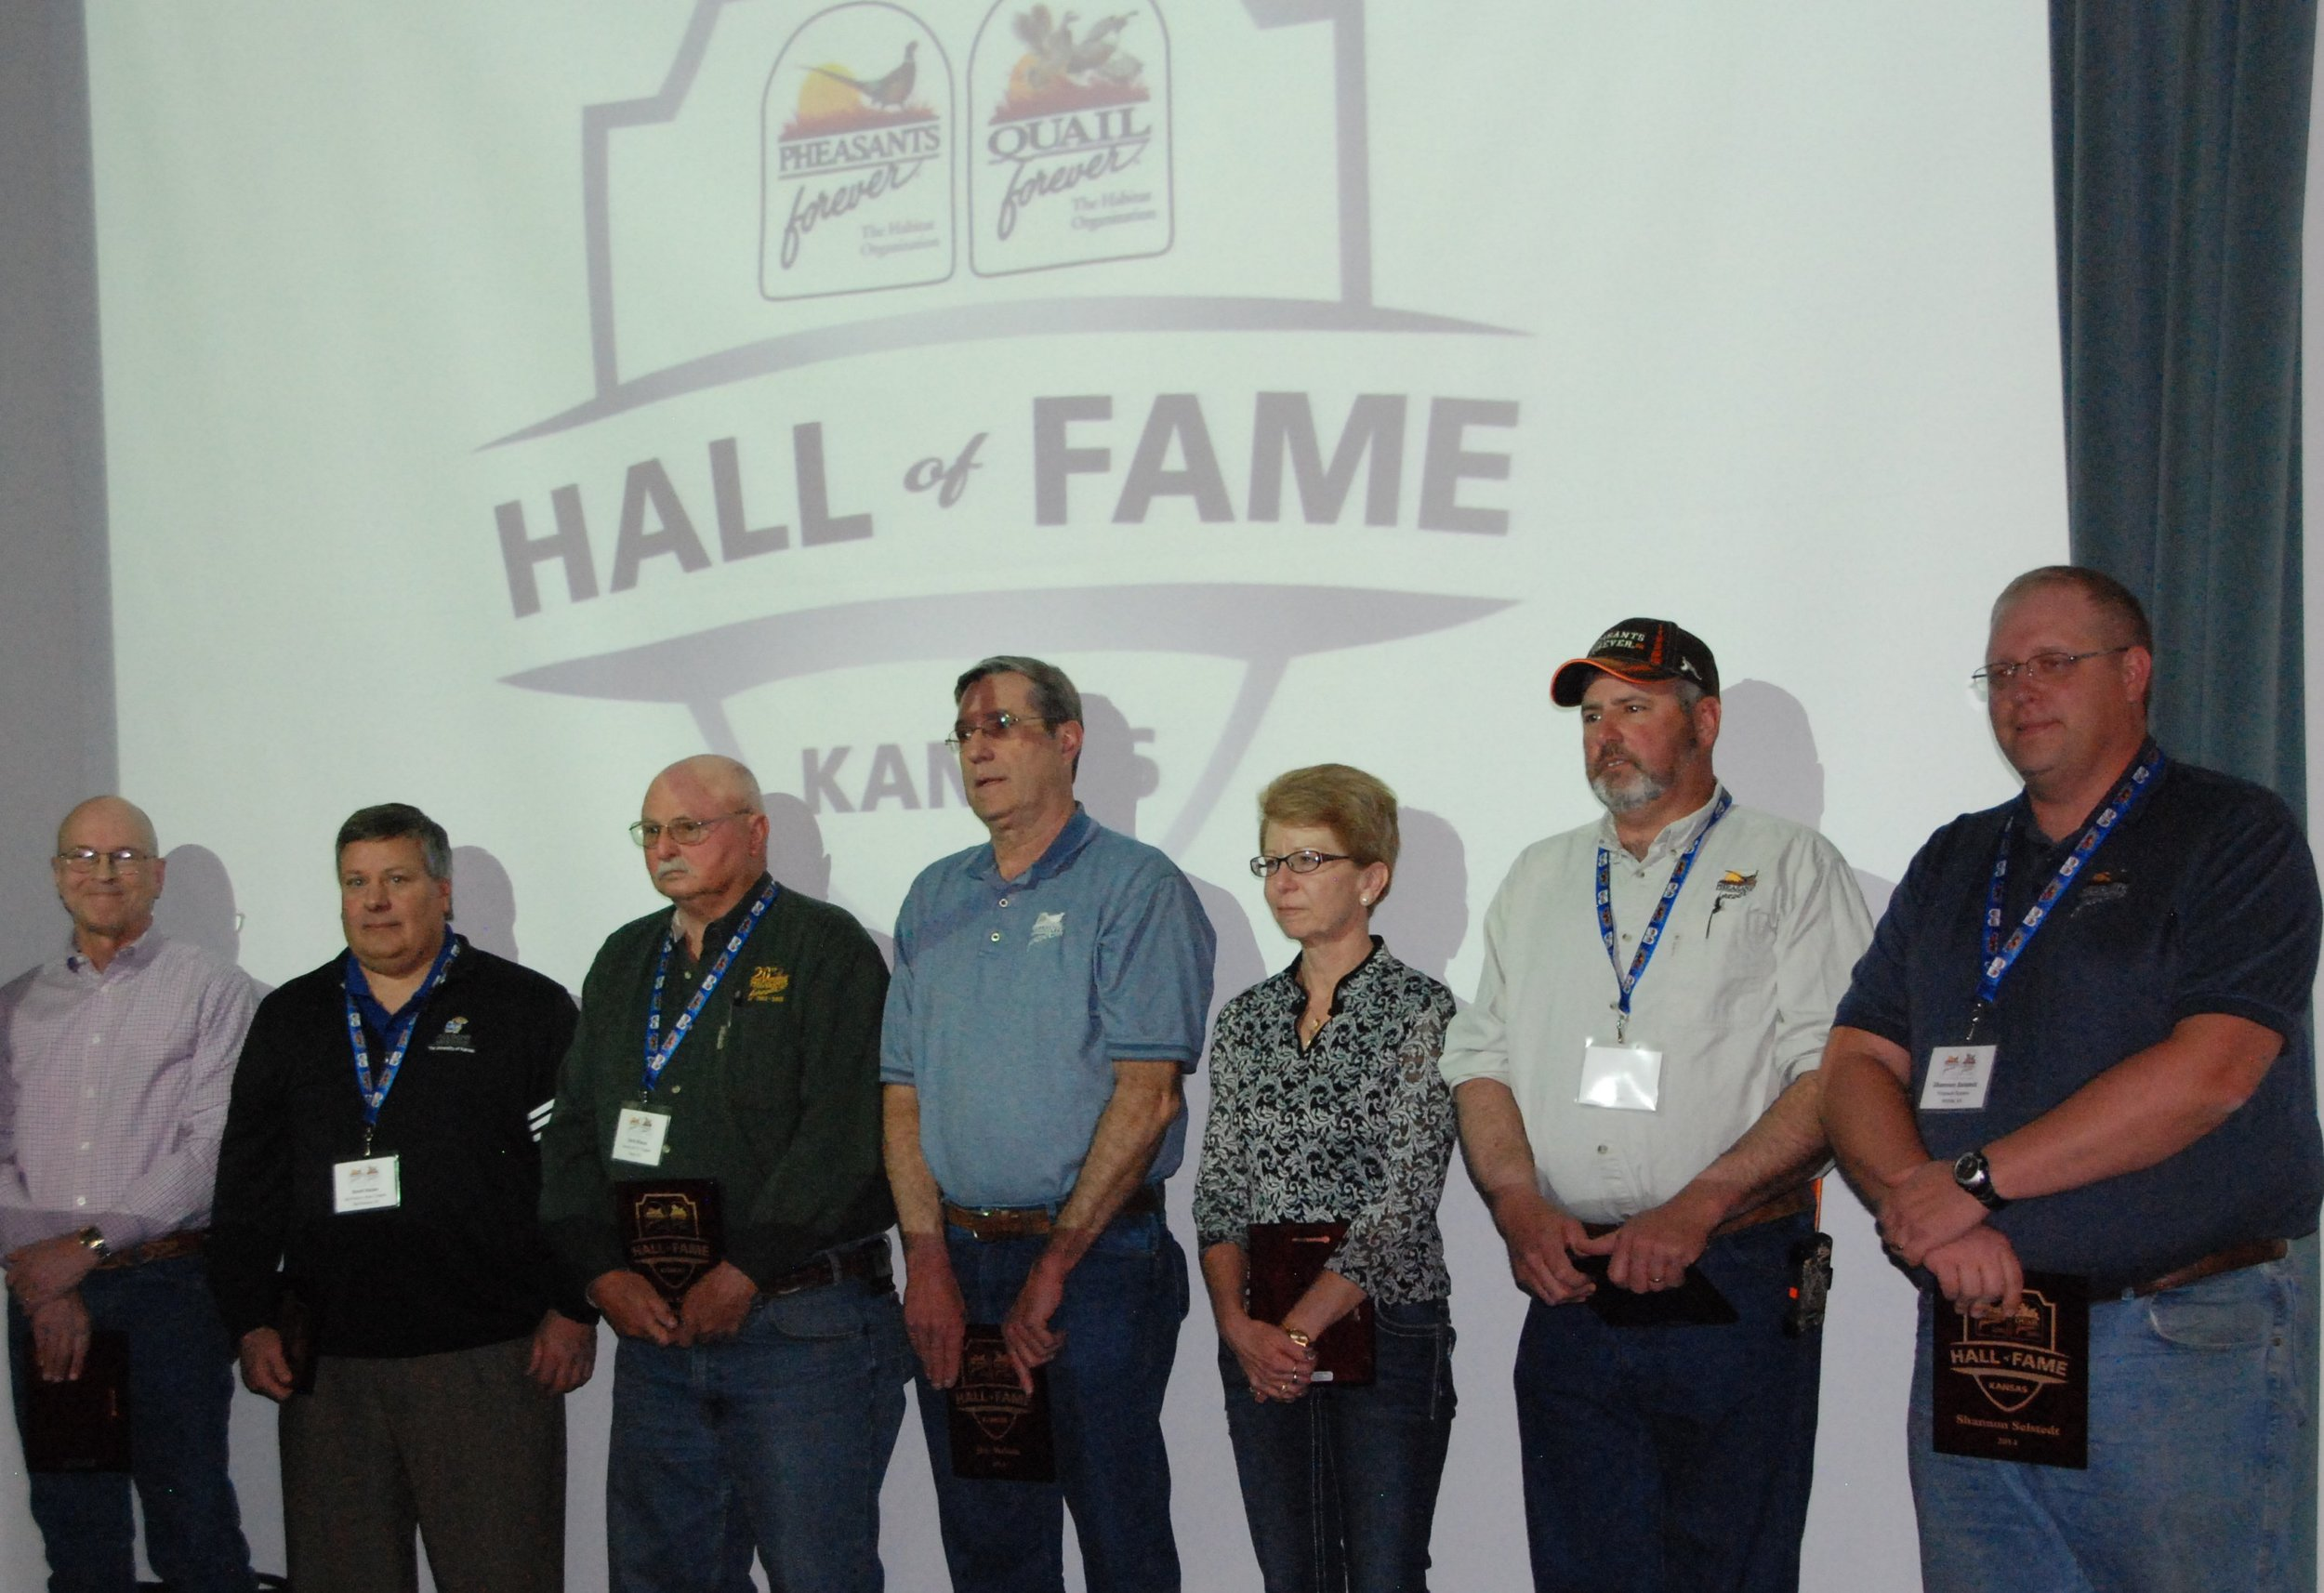 2014 Hall of Fame Inductees (Left to Right) Barth Crouch, Brett Reber, Dick Klaus, Jim Melton, Sue Mann, Heath Hayden, and Shannon Selstedt, (Not Pictured: Bill Brannan and Rick Pauls).